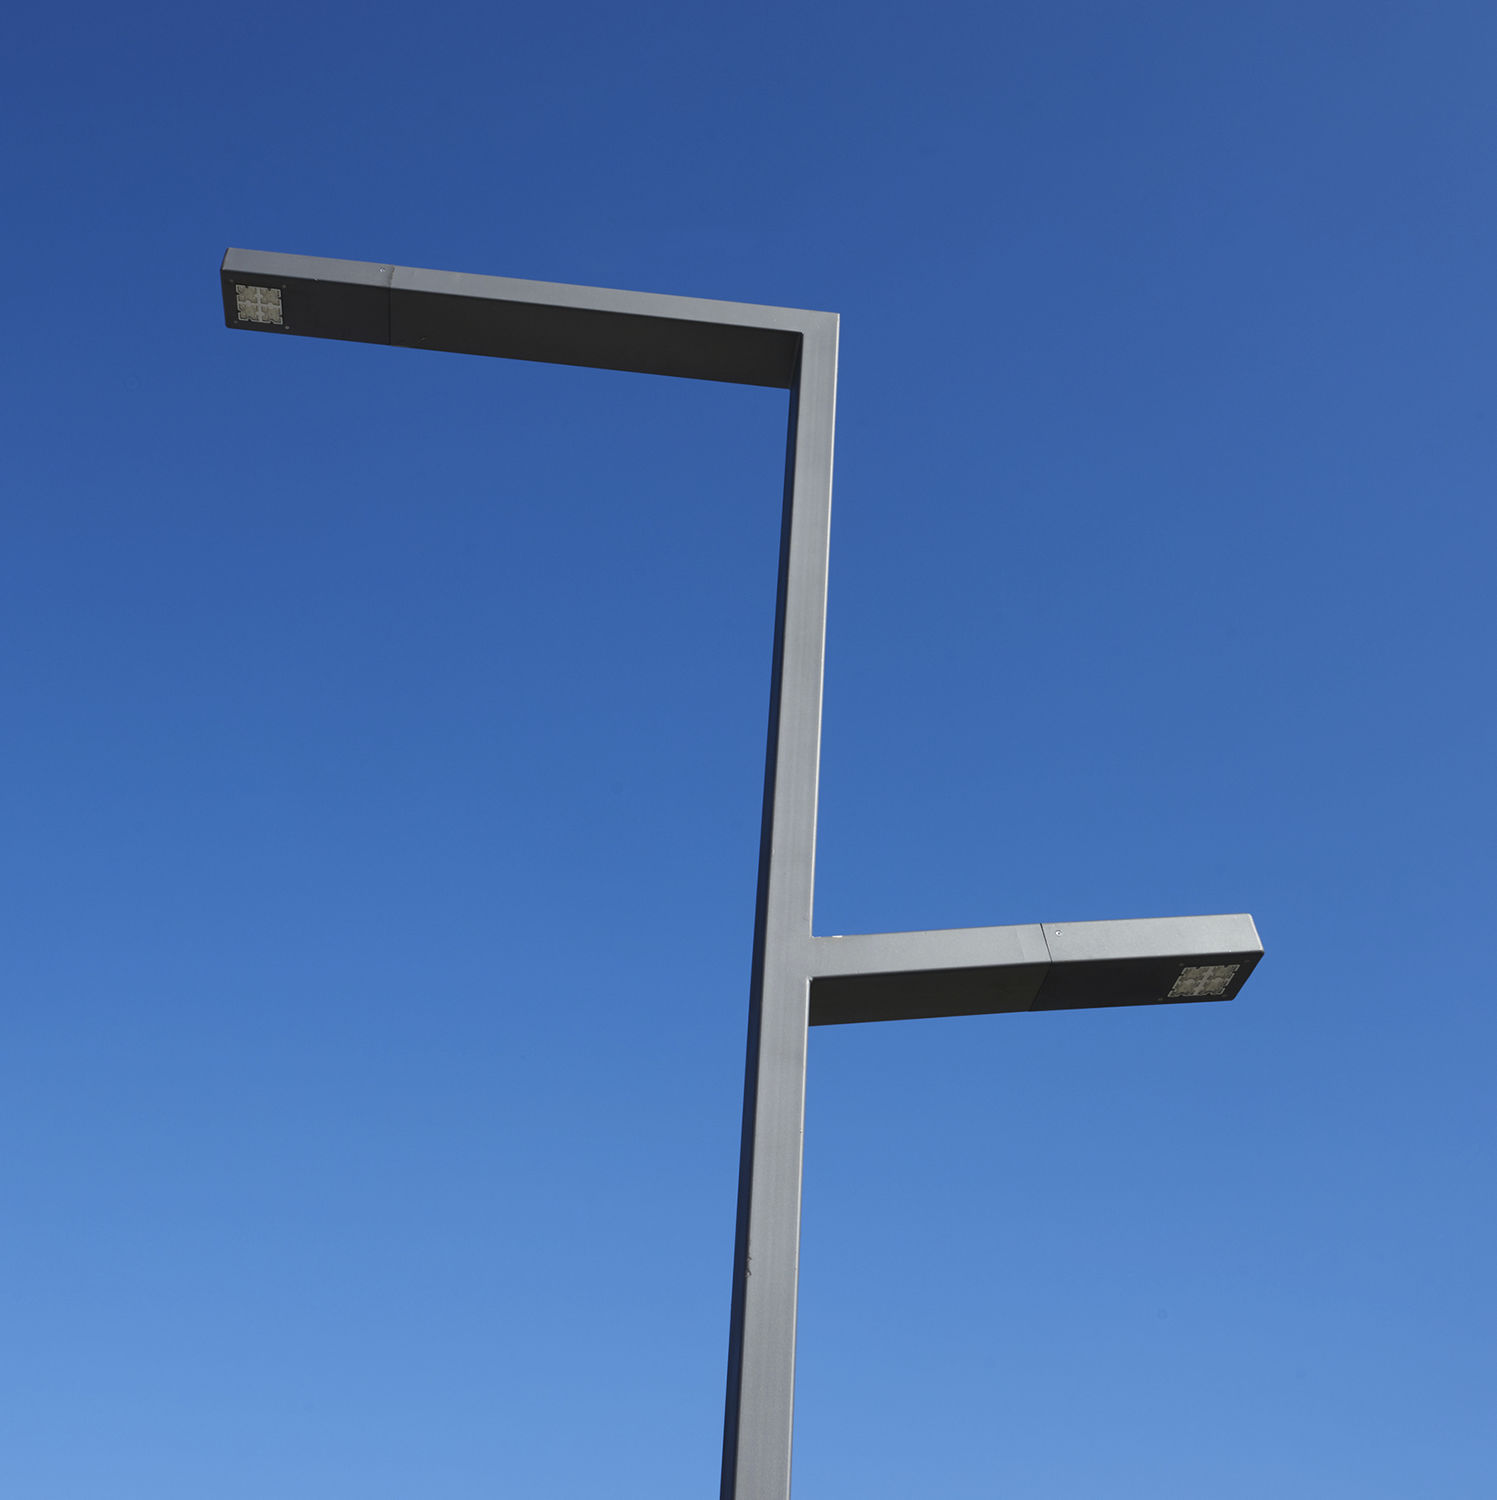 Urban lamppost / contemporary / metal / LED - GEMINI - LARUS DESIGN for Street Lamp Post Design  66pct